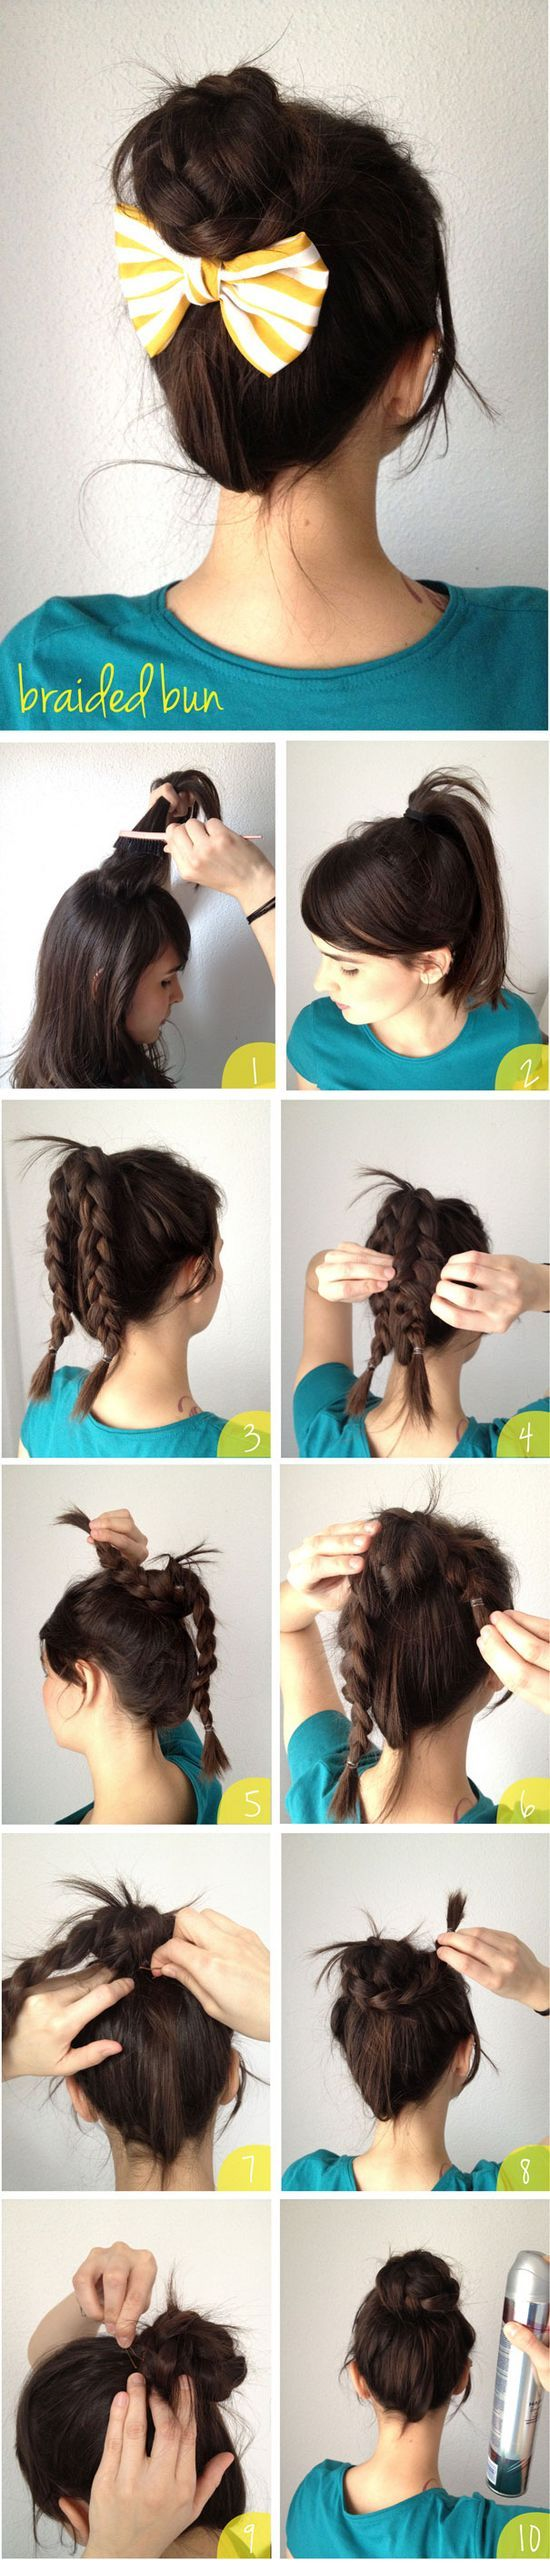 braided bun & bowHair Ideas, Hairstyles, Braided Buns, Hair Tutorials, Long Hair, Messy Buns, Hair Style, Hair Buns, Braids Buns